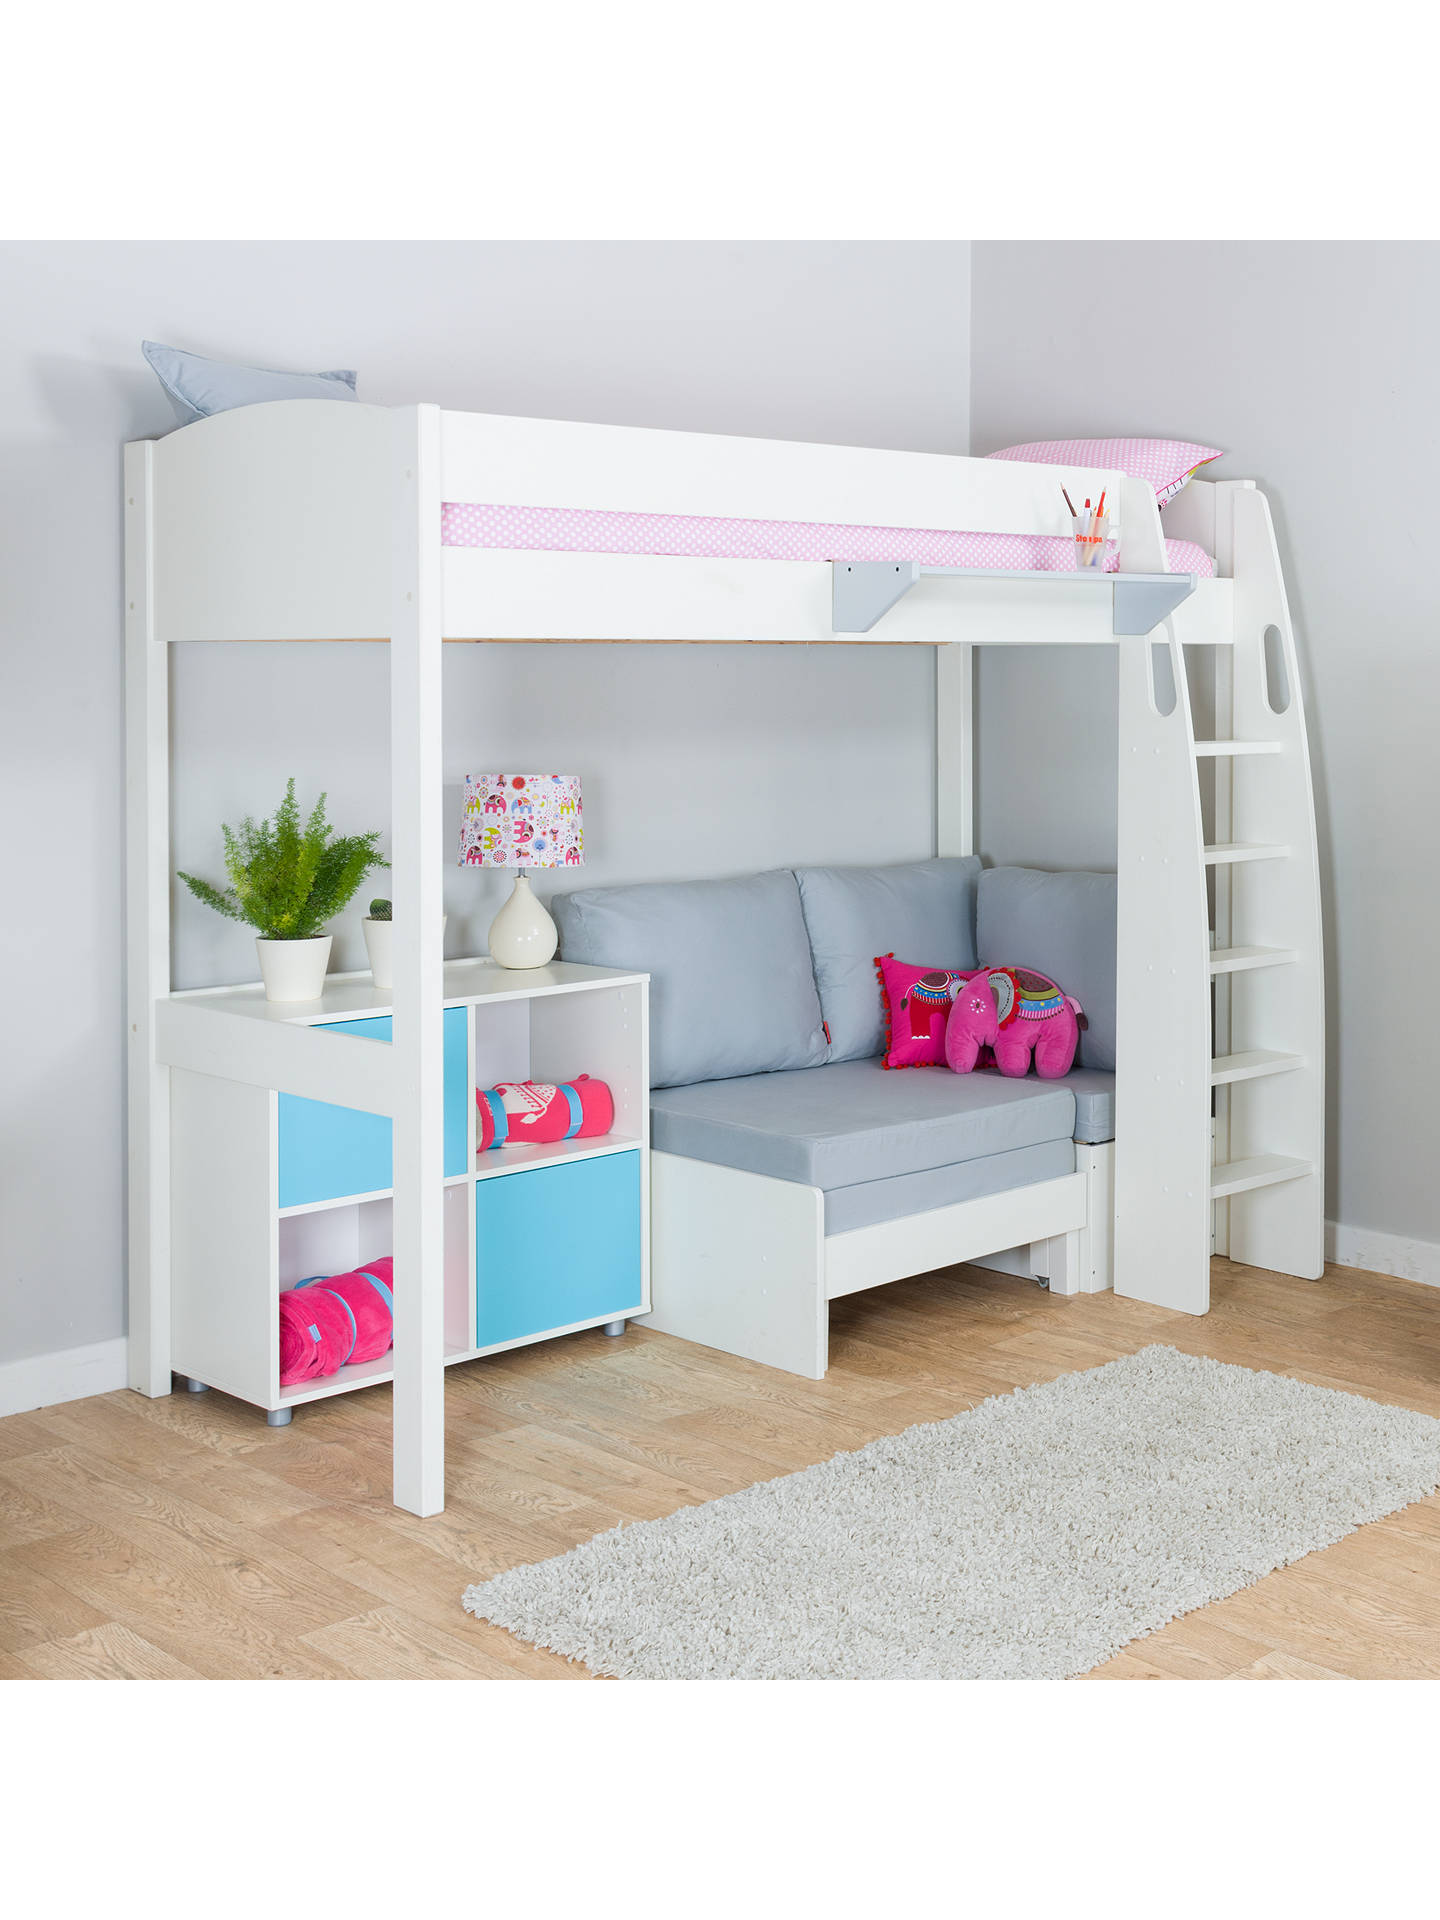 Buy Stompa Uno S Plus High-Sleeper with White Headboard, Grey Chair Bed and 2 Door Cube Unit, Grey/Aqua Online at johnlewis.com